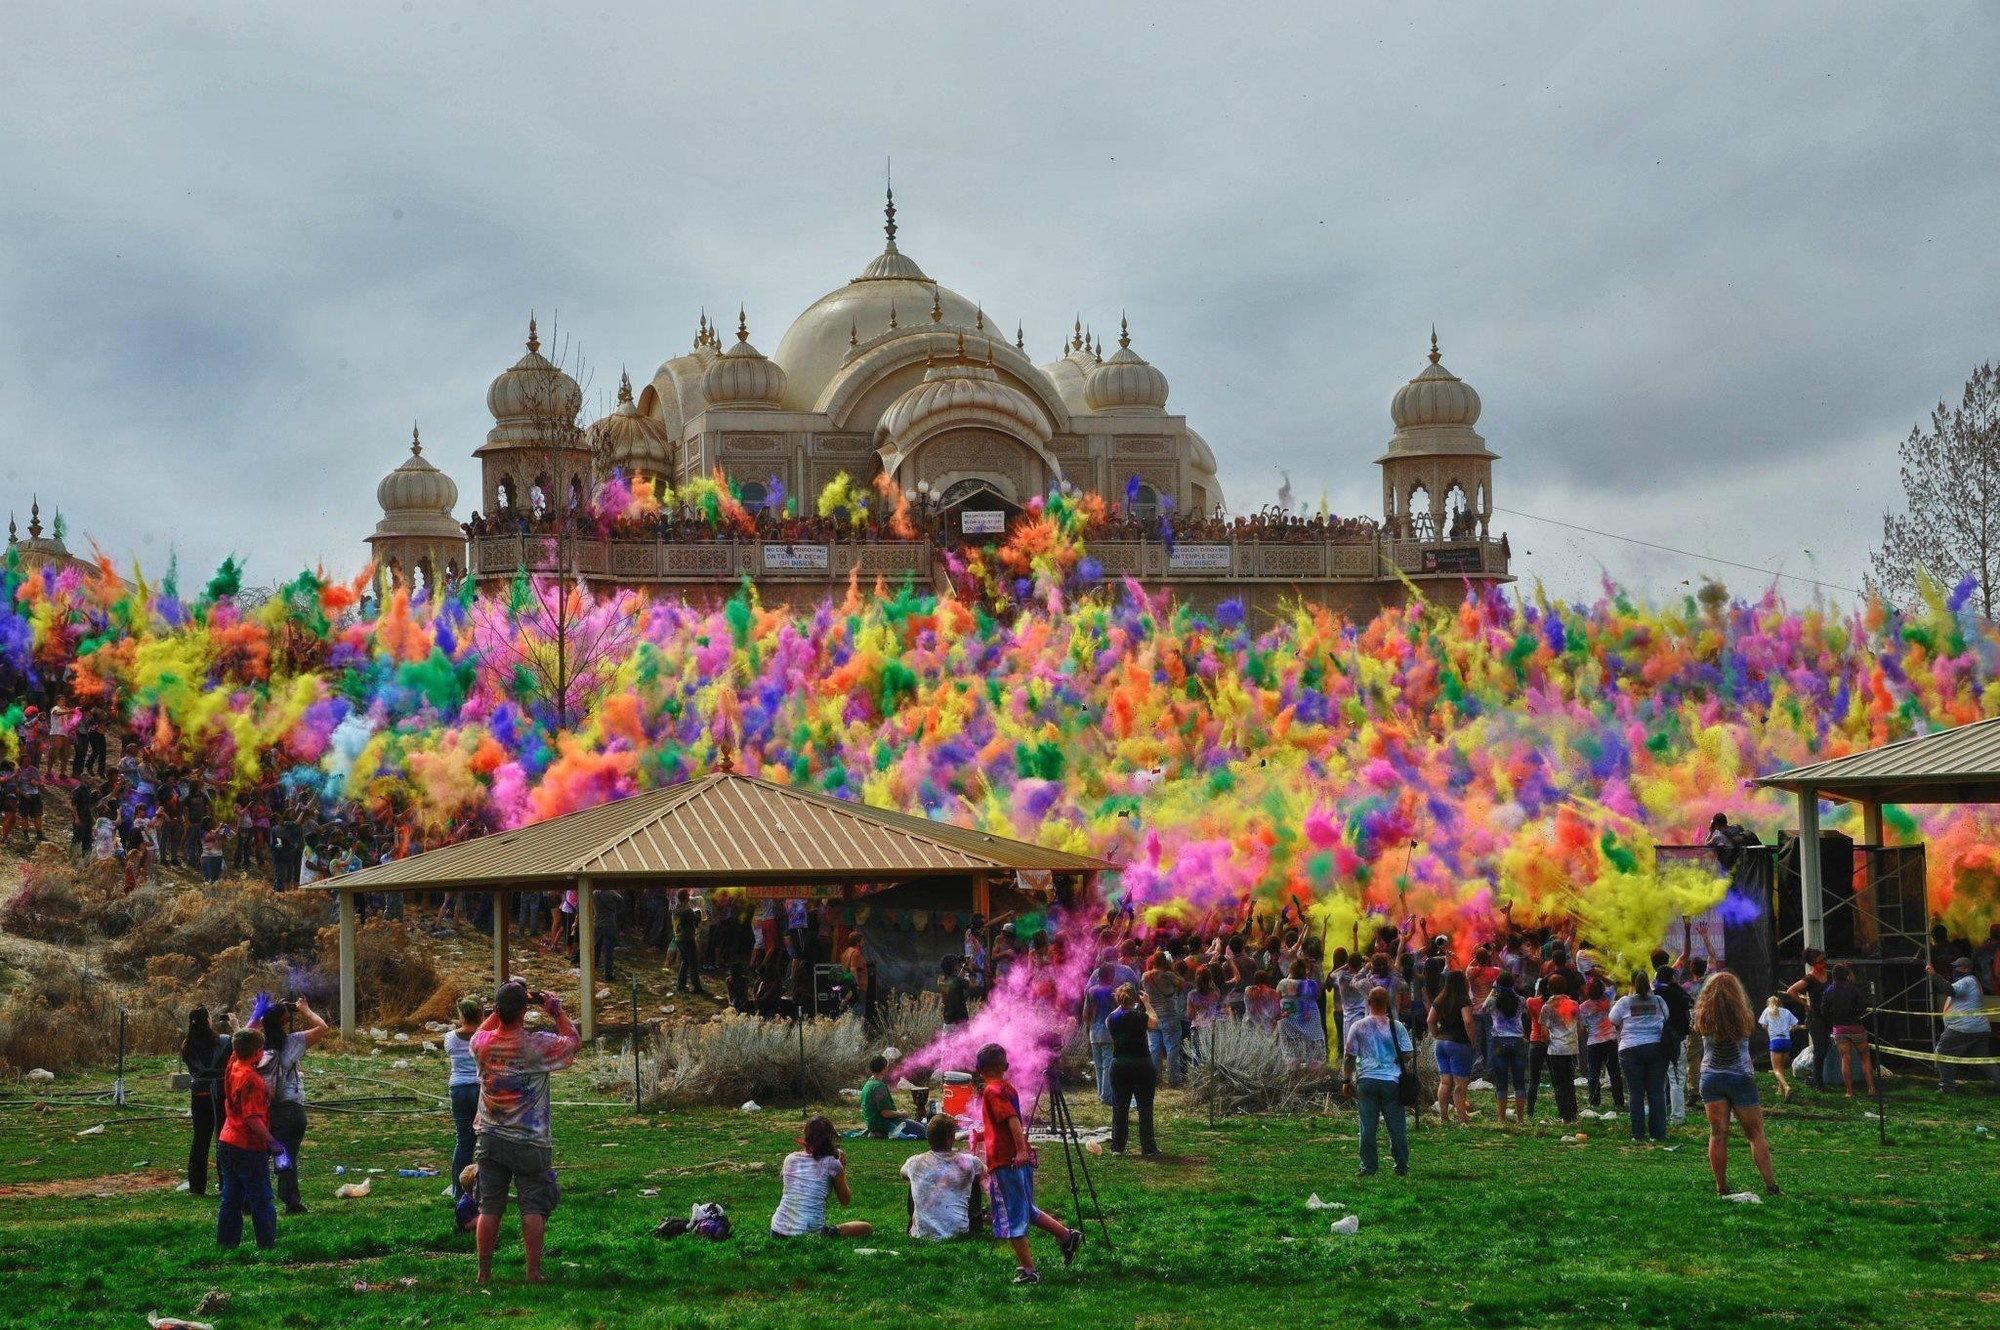 Some seriously cool sights at the Festival of Colors at Sri Sri Radha Krishna Temple.